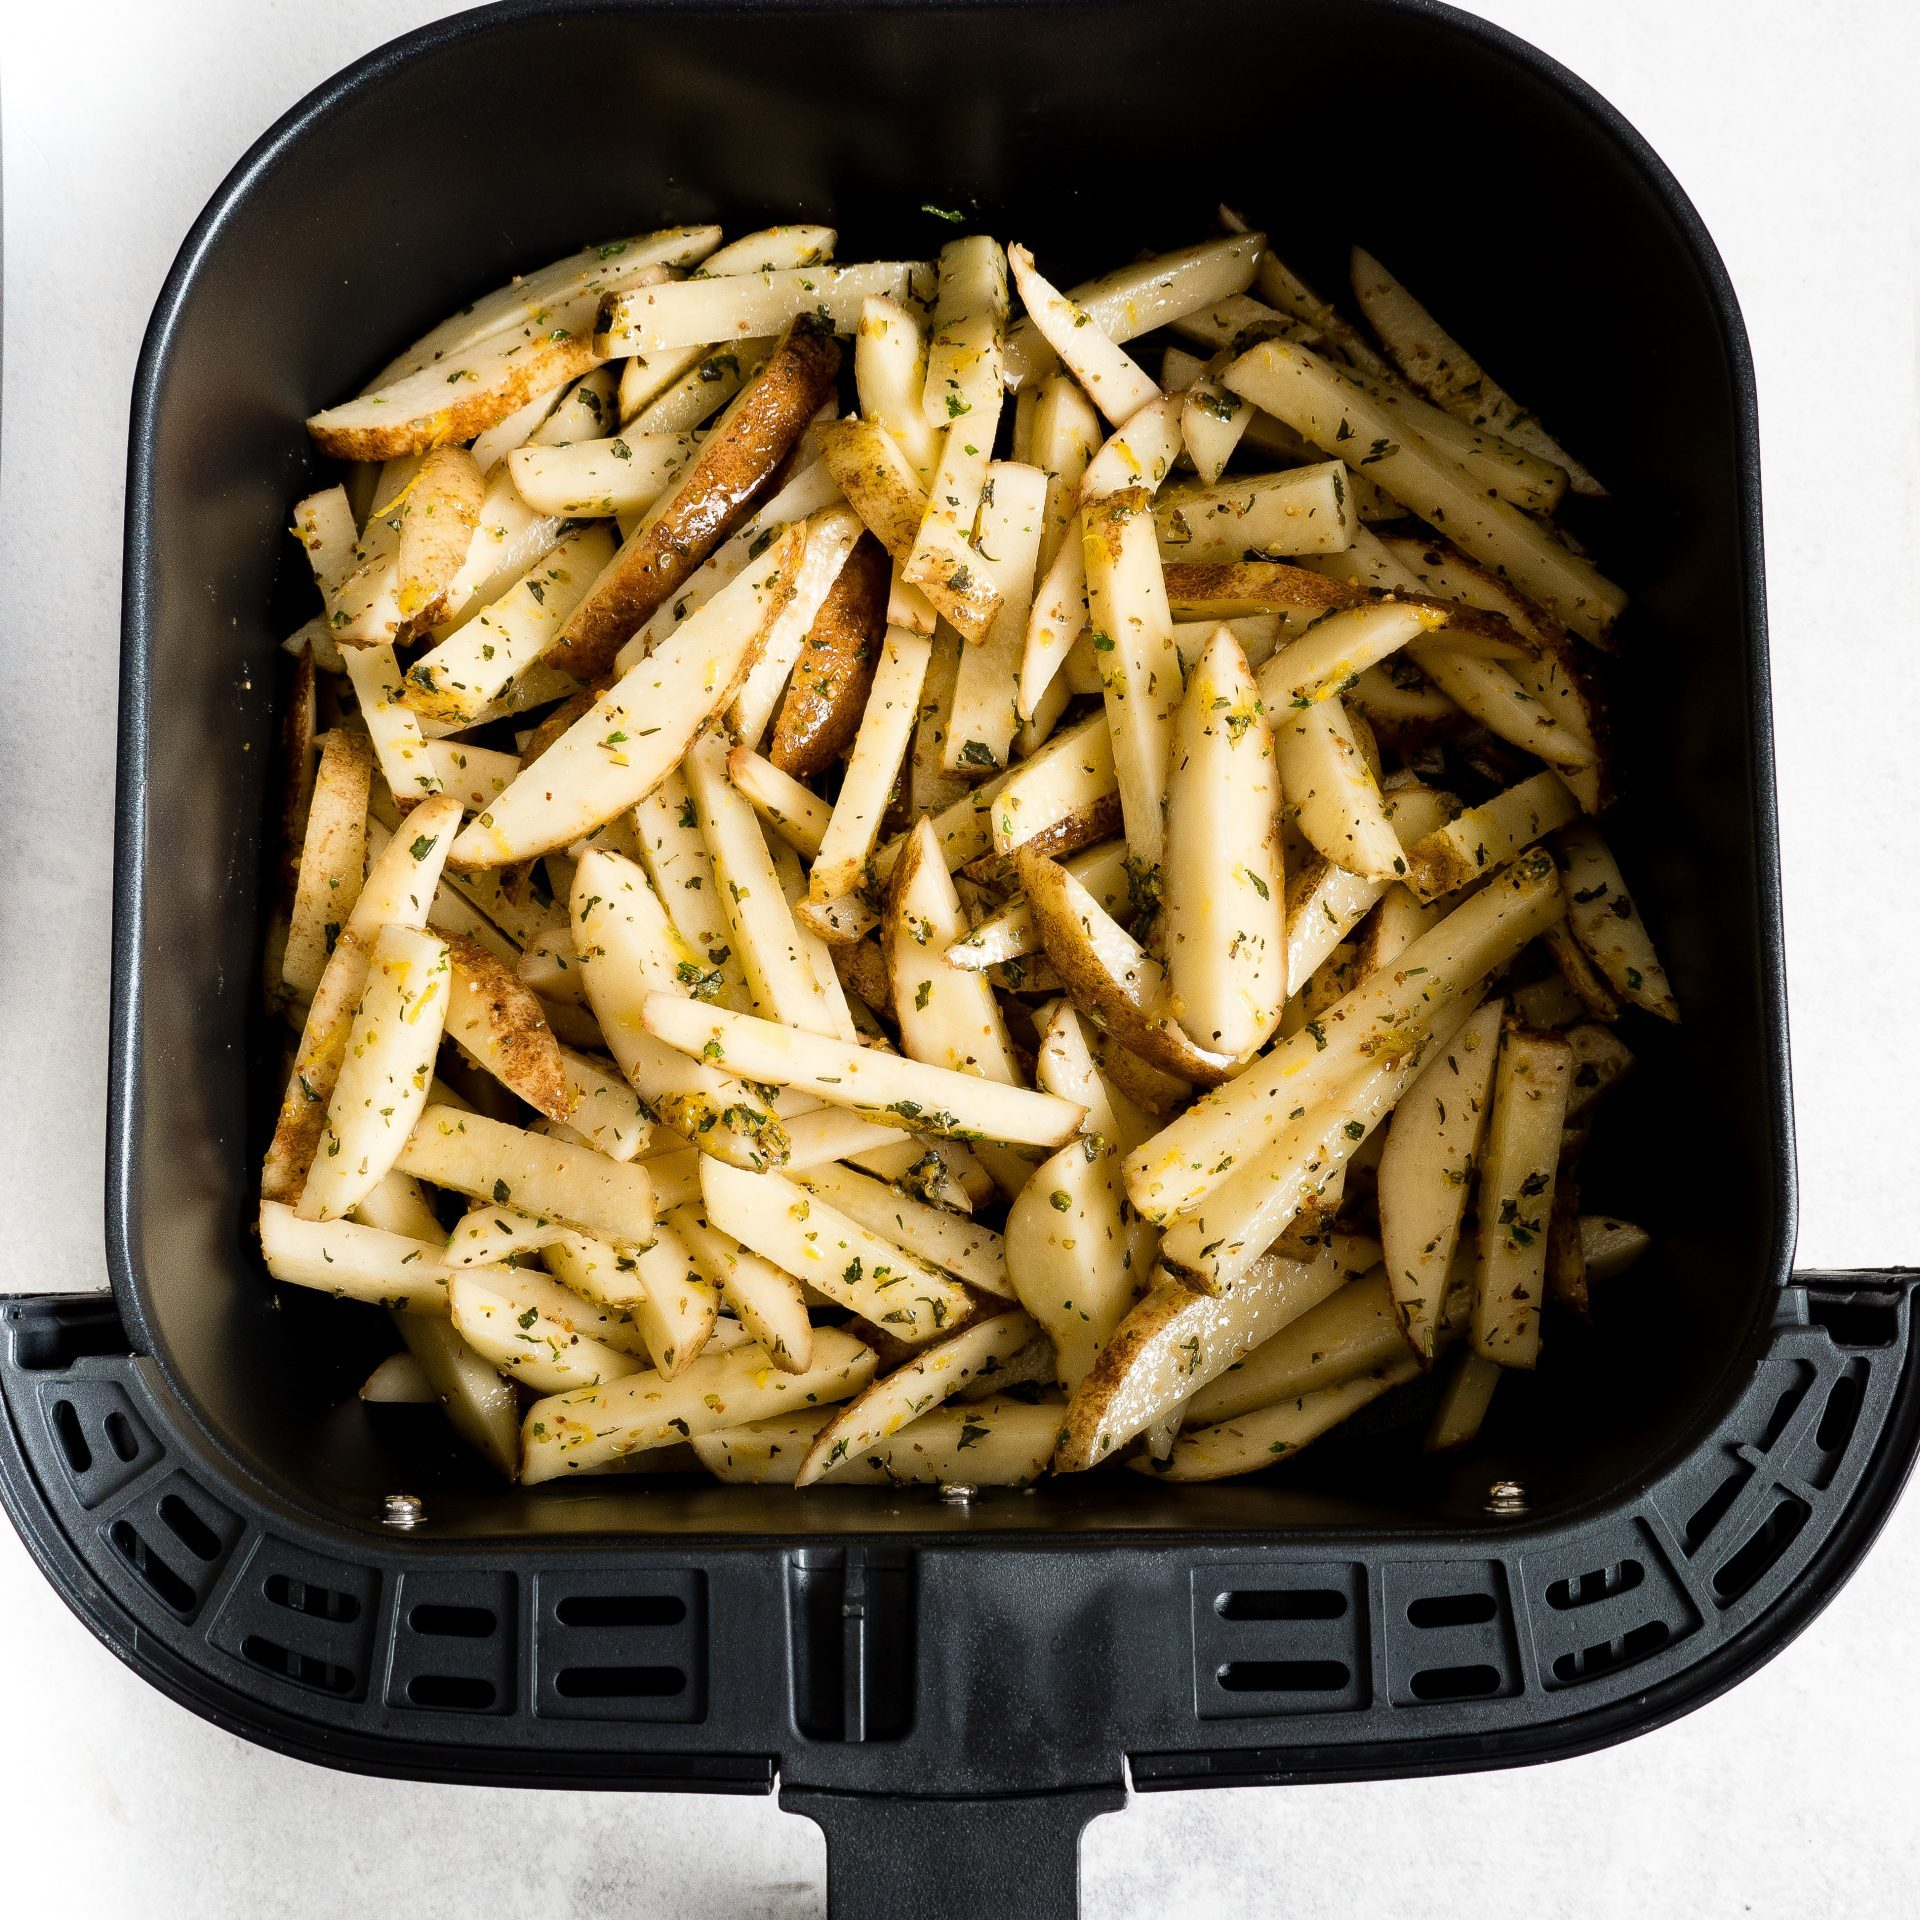 picture of french fries in air fryer basket